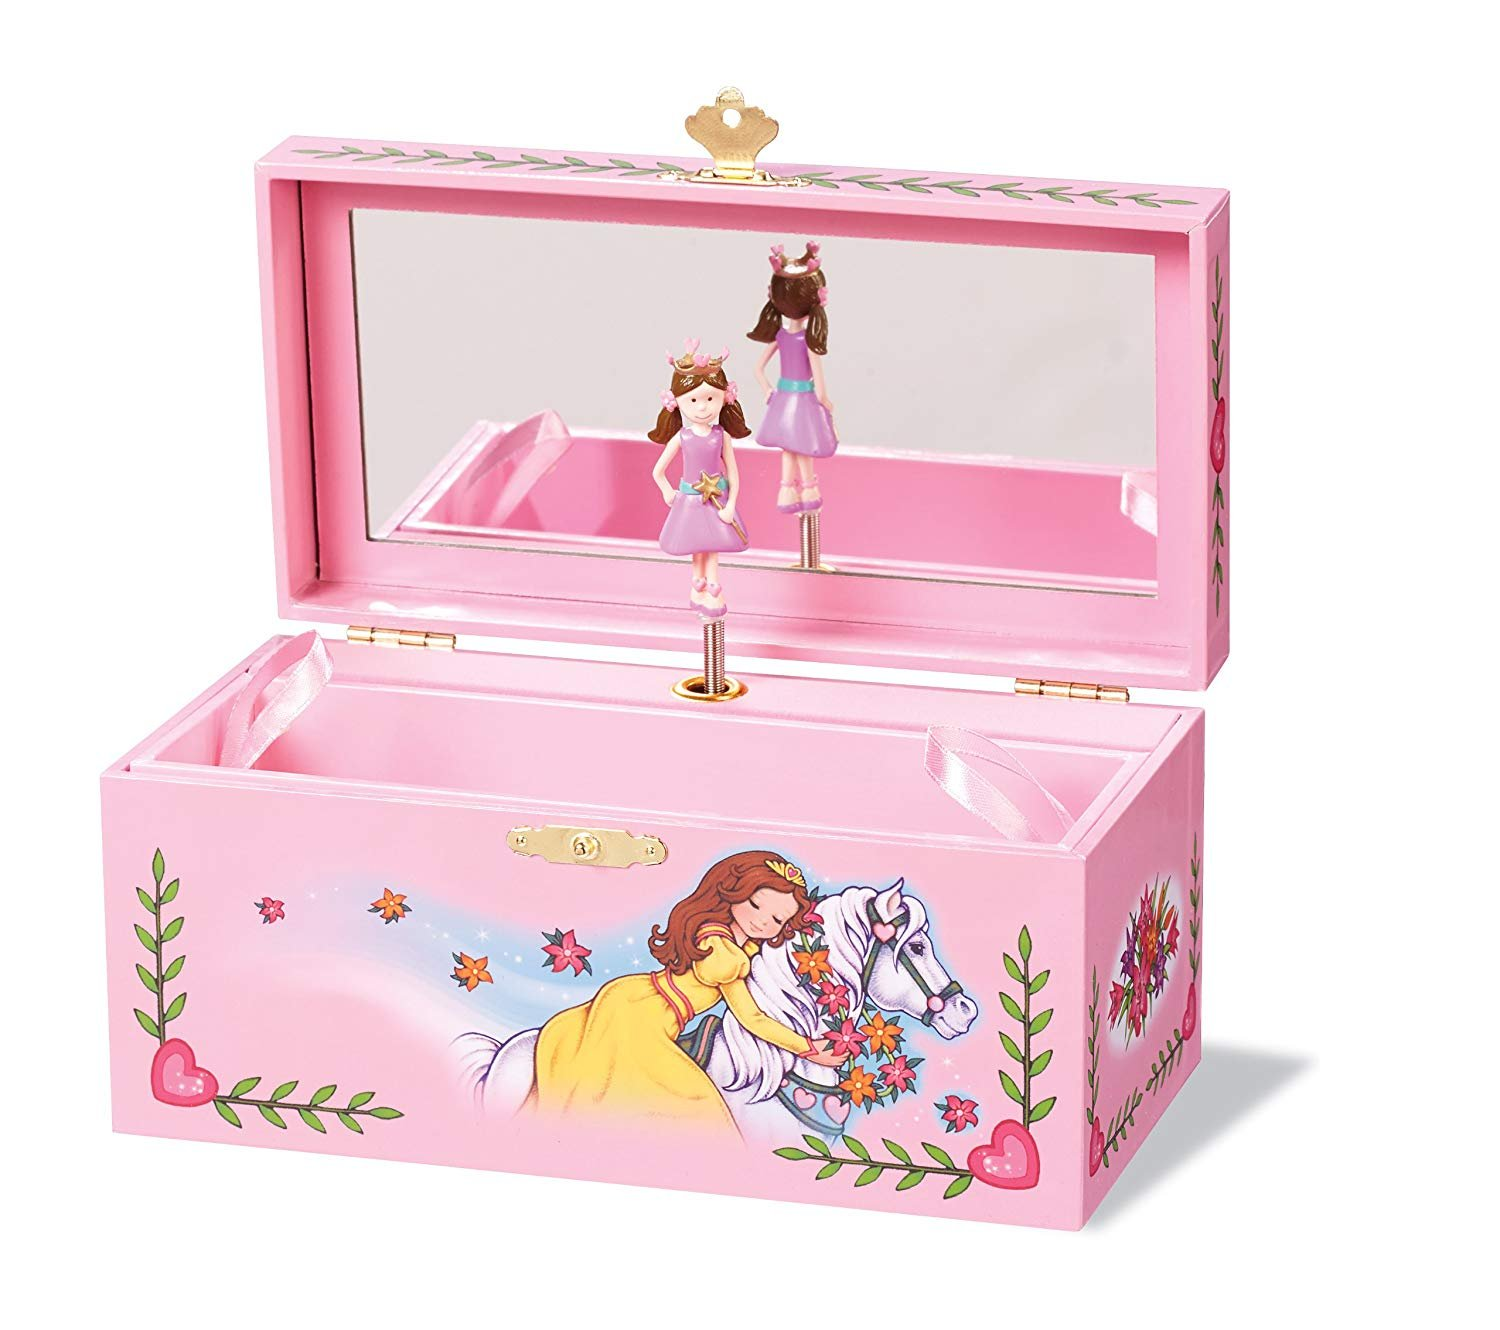 Breyer Royal Garden Princess Jewelry Box